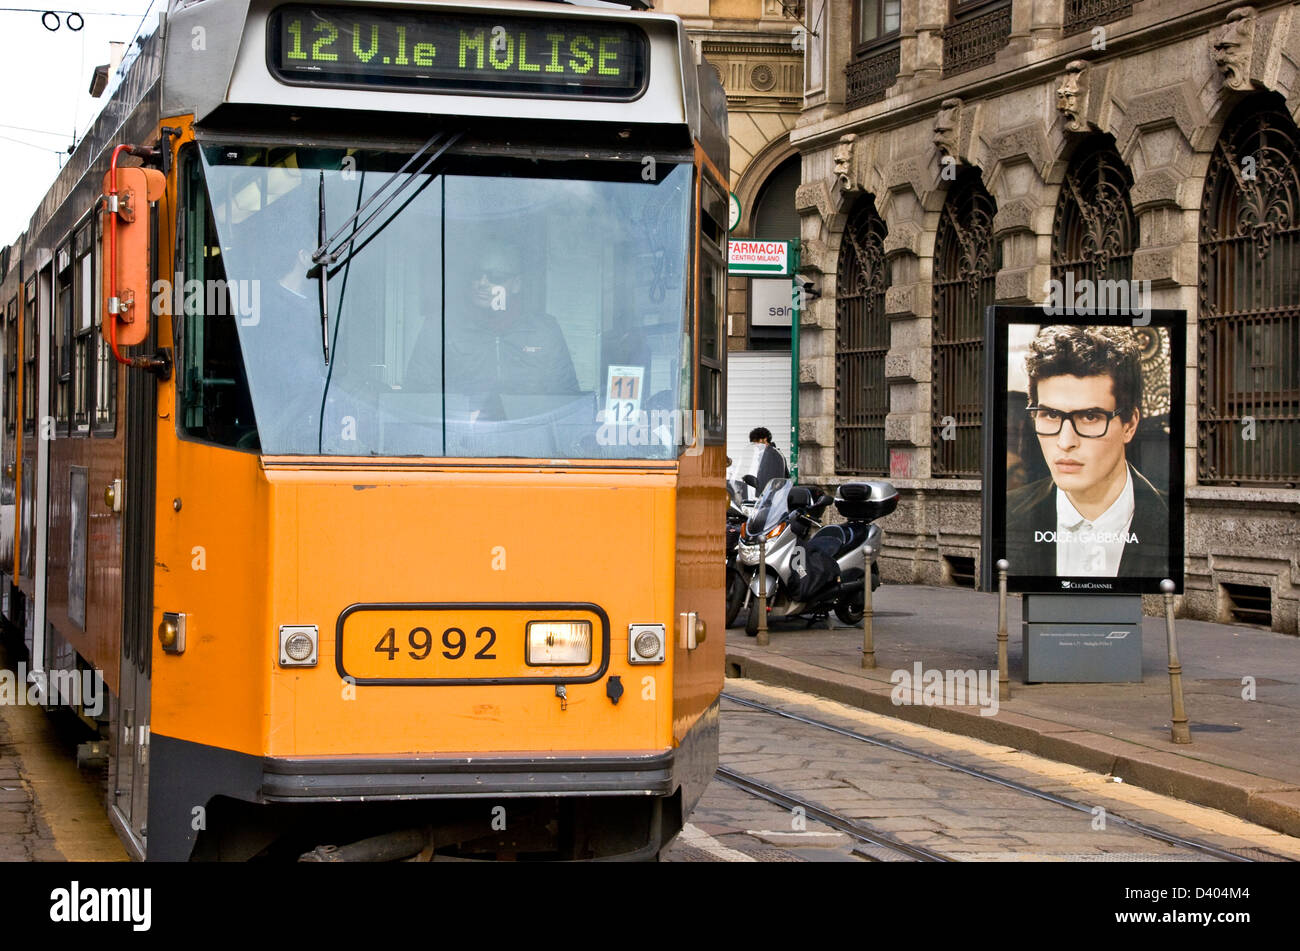 Yellow electric tram passing Dolce & Gabbana advert Milan Lombardy northern Italy Europe - Stock Image